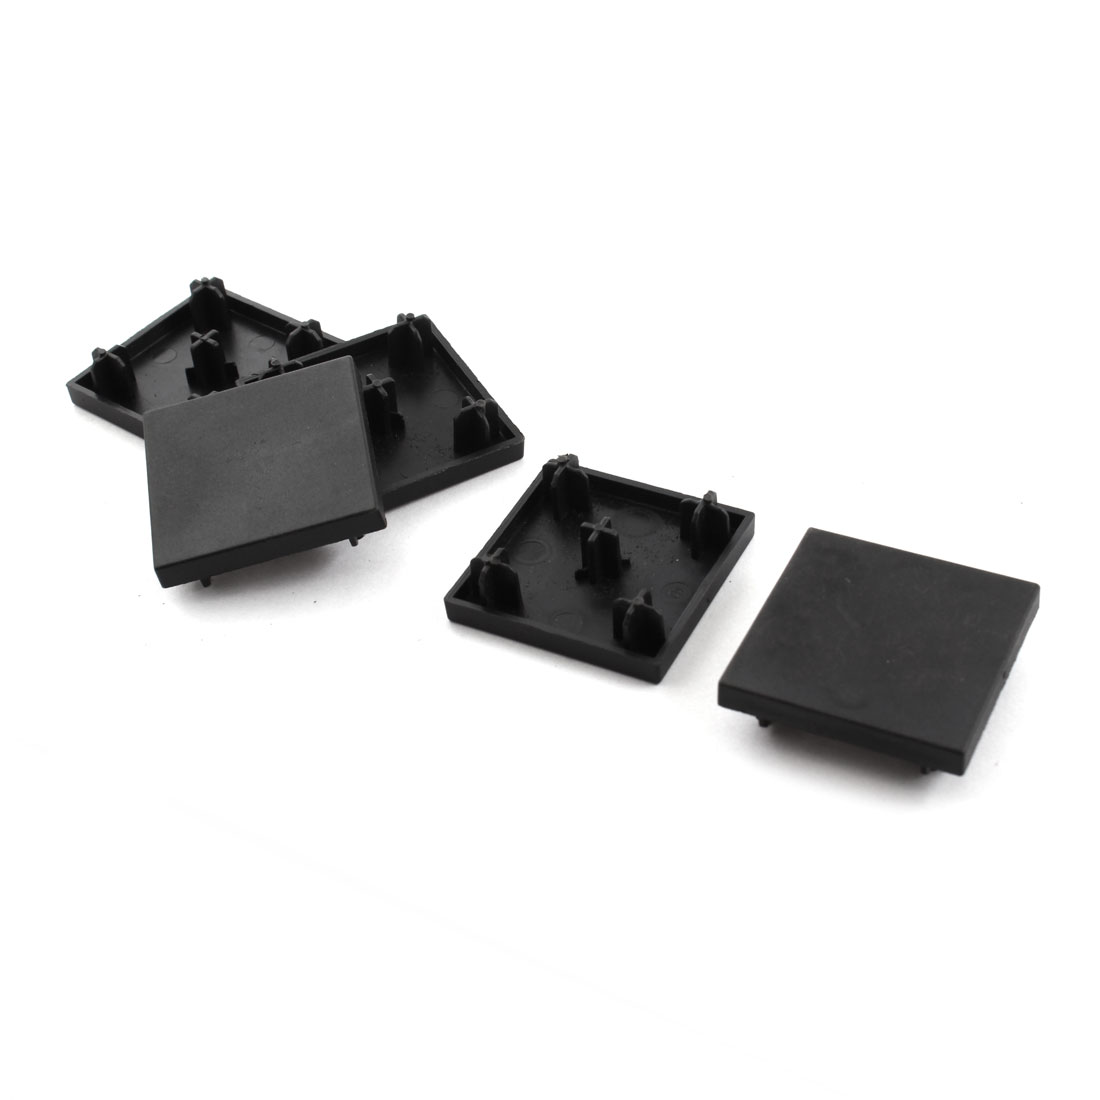 5 Pcs Black Square Extrusion End Cap Cover for 40mm x 40mm T-Slot Aluminum Profile